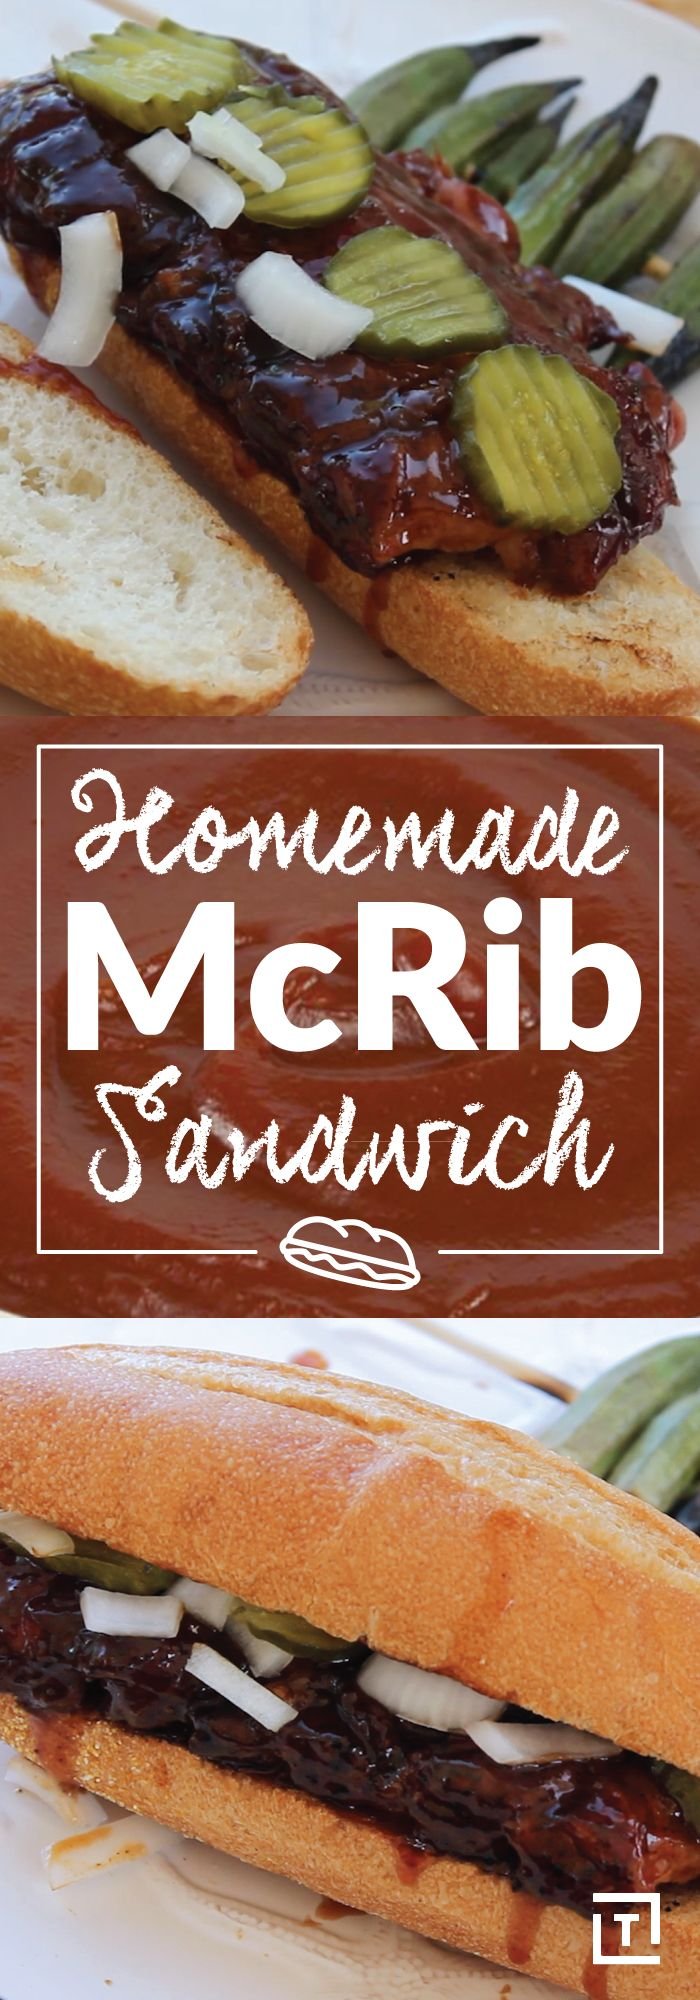 Thanks to BBQ Tricks, the McRib is here to stay! Forget waiting for the limited-time sandwich, we're making 'em at home instead. Just slather pork spare ribs with homemade BBQ sauce and BBQ rub, smoke them until they're nice and tender, and put it on a toasted french roll. Top with dill pickles and onions for a sandwich that's available for an unlimited time.